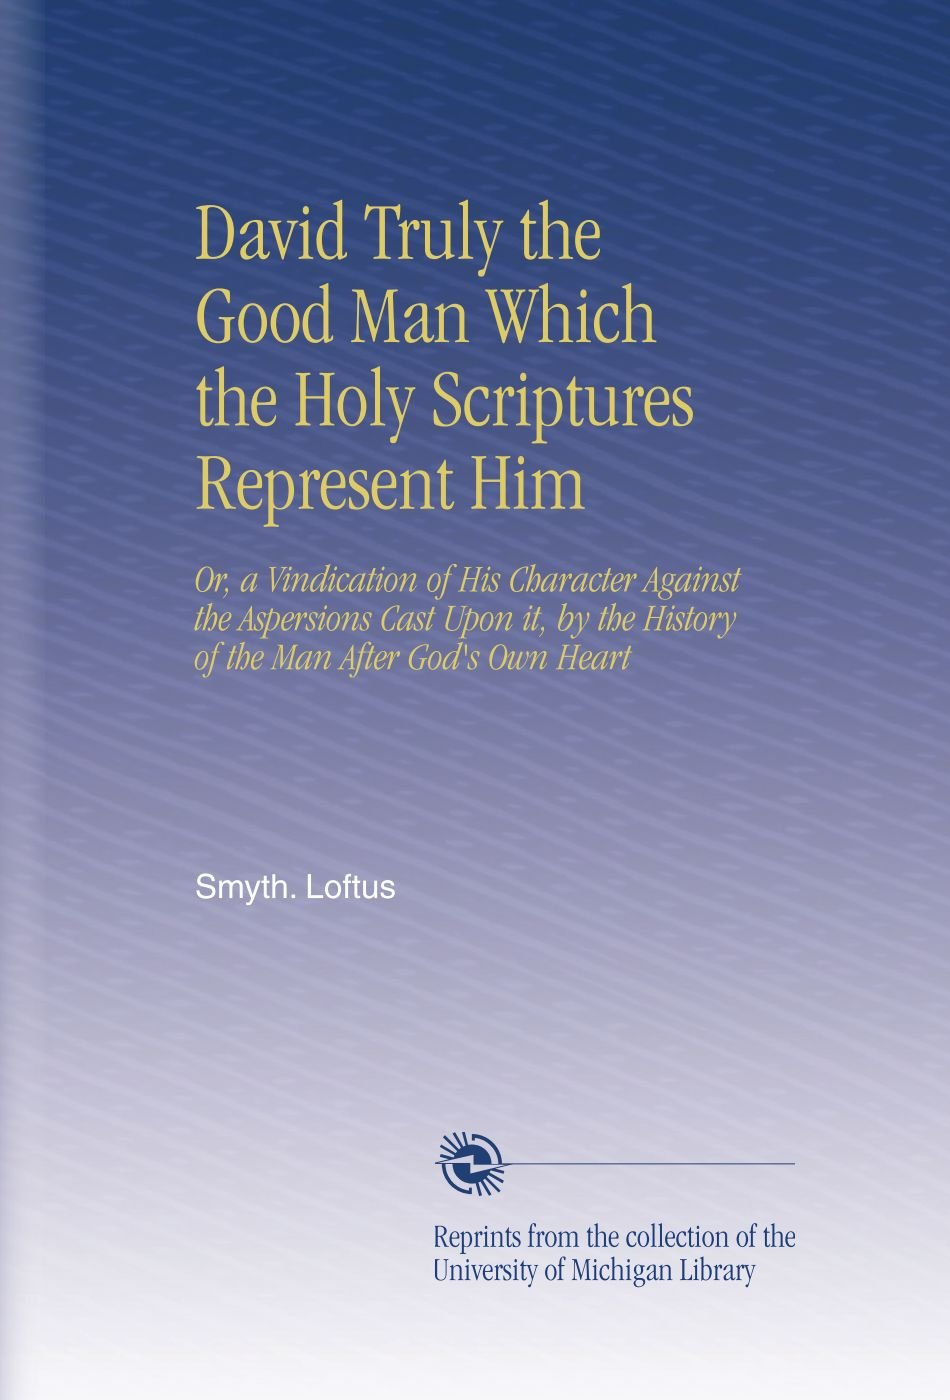 David Truly the Good Man Which the Holy Scriptures Represent Him: Or, a Vindication of His Character Against the Aspersions Cast Upon it, by the History of the Man After God's Own Heart PDF